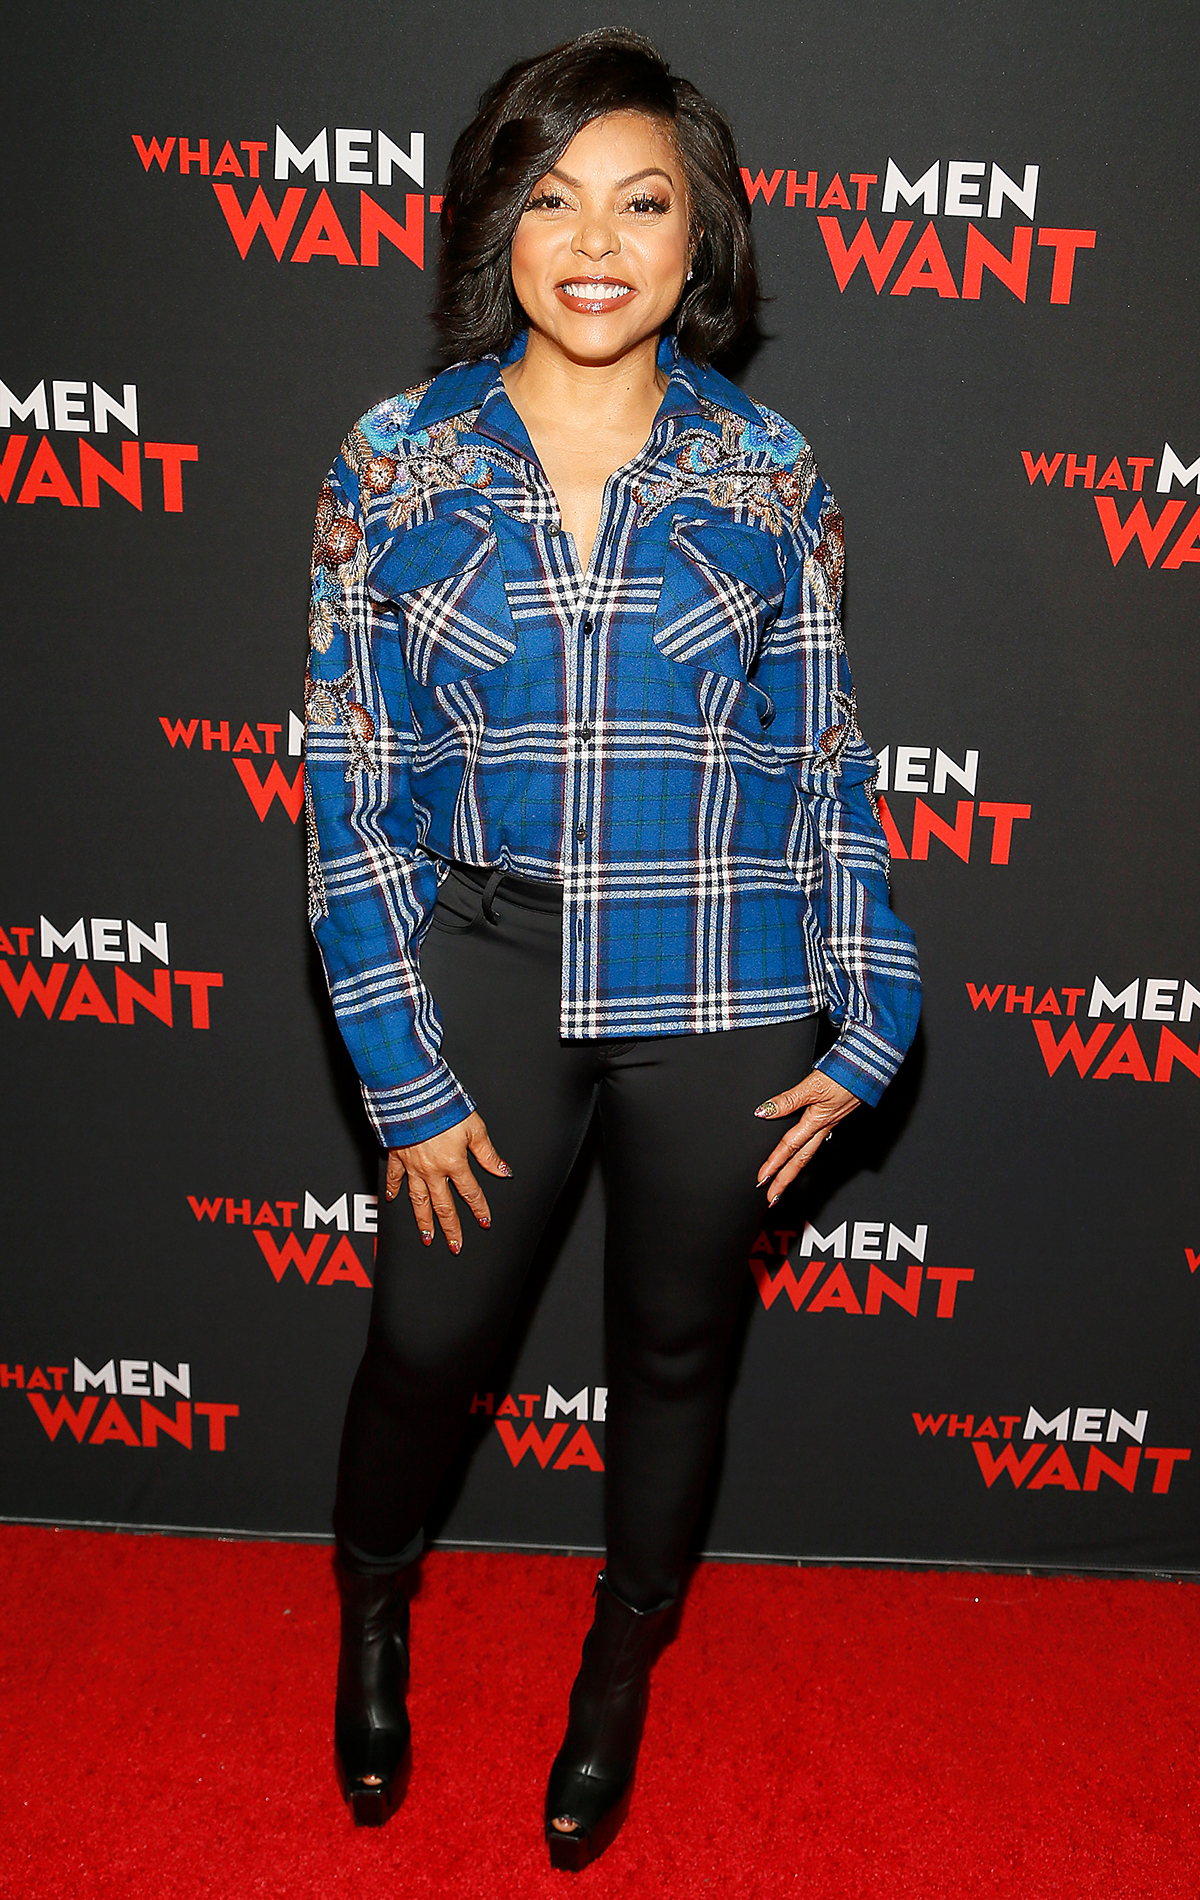 'What Men Want' Special Washington DC Screening